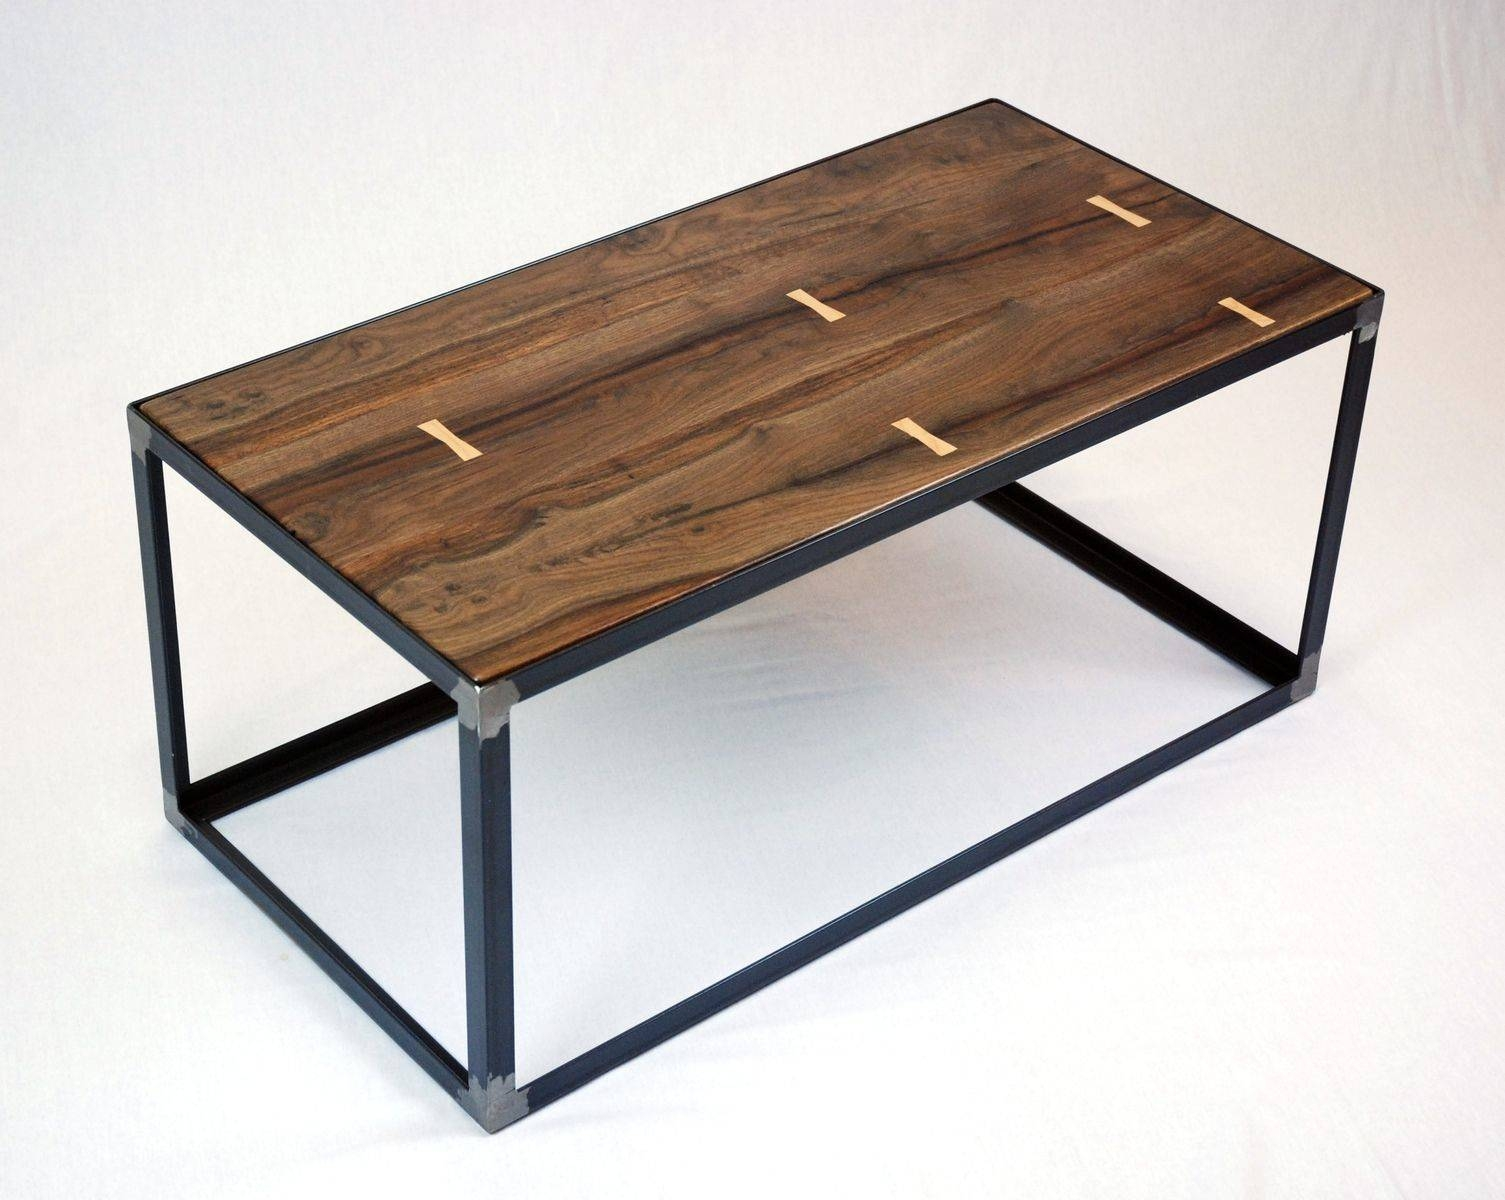 Stylish Rustic Walnut Coffee Table With Coffee Tables With Drawers intended for Stylish Coffee Tables (Image 28 of 30)